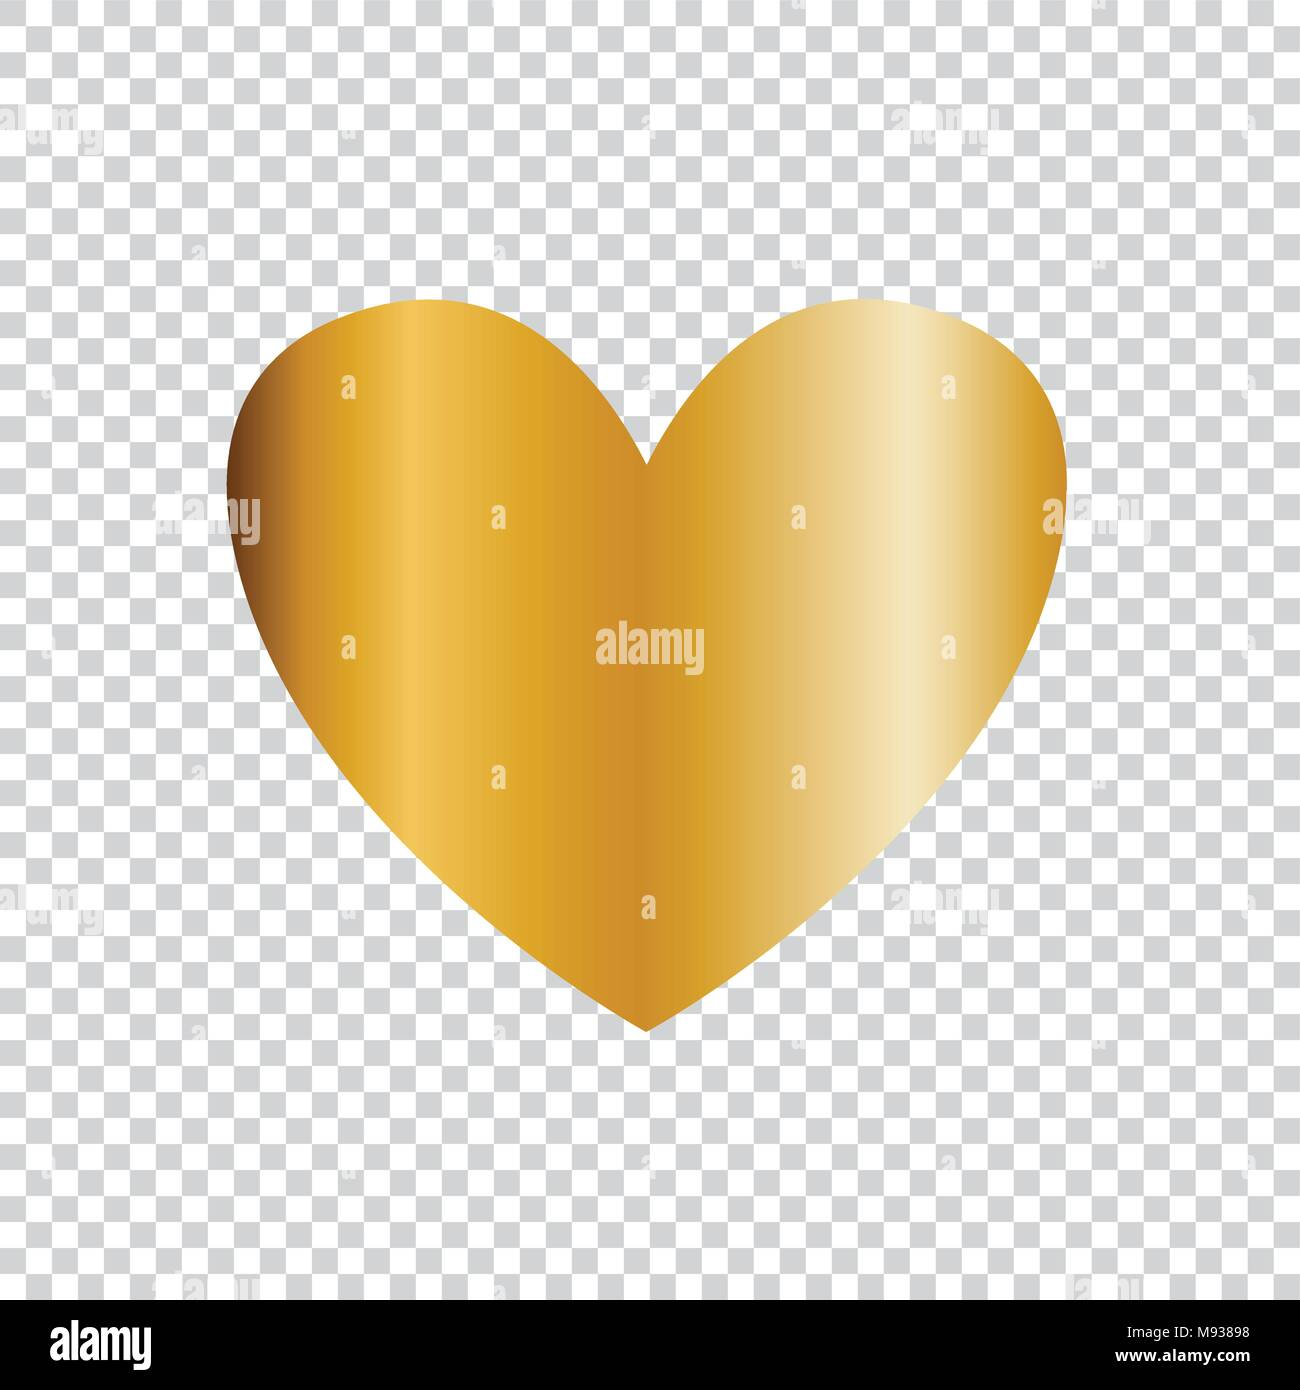 Vector Golden Heart Icon Clip Art Isolated On Transparent